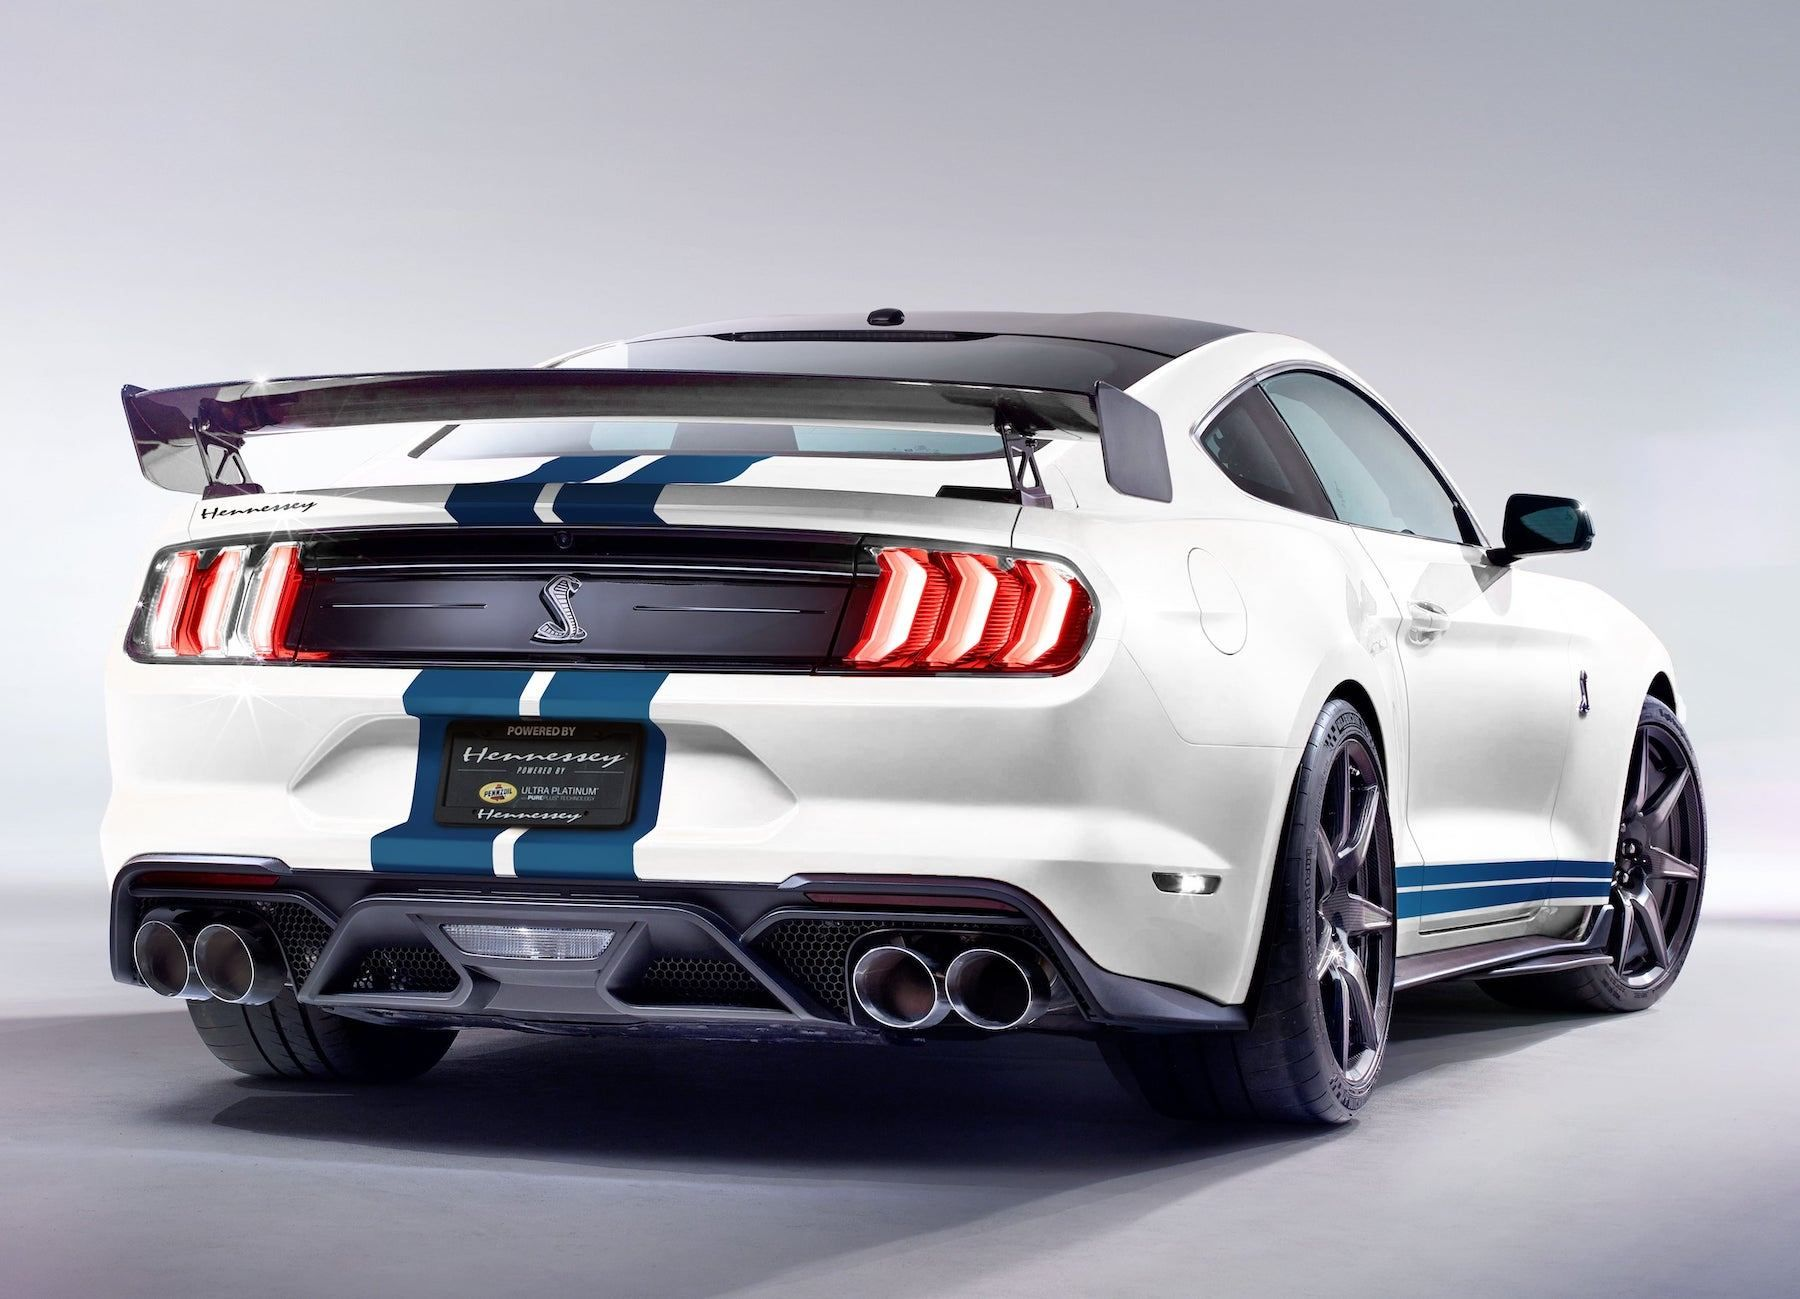 Hennessey S Take On The 2020 Mustang Gt500 Makes 1 200 Hp Ford Mustang Shelby Gt500 Shelby Gt500 Ford Mustang Shelby